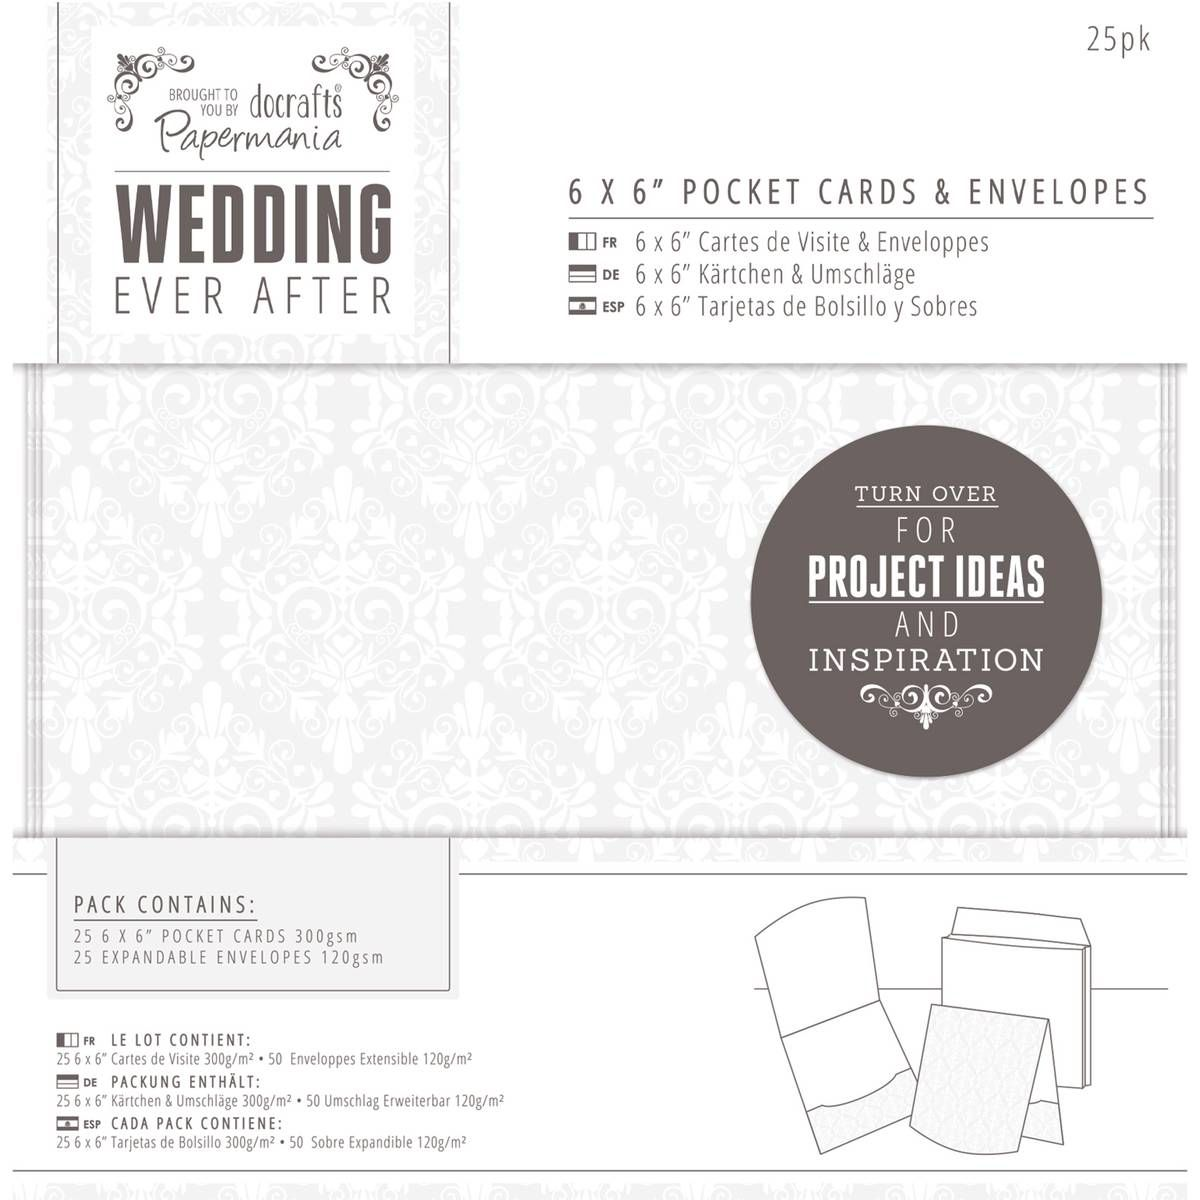 Papermania Wedding Ever After Pocket Cards 6 X 6 Inches 25 Pack